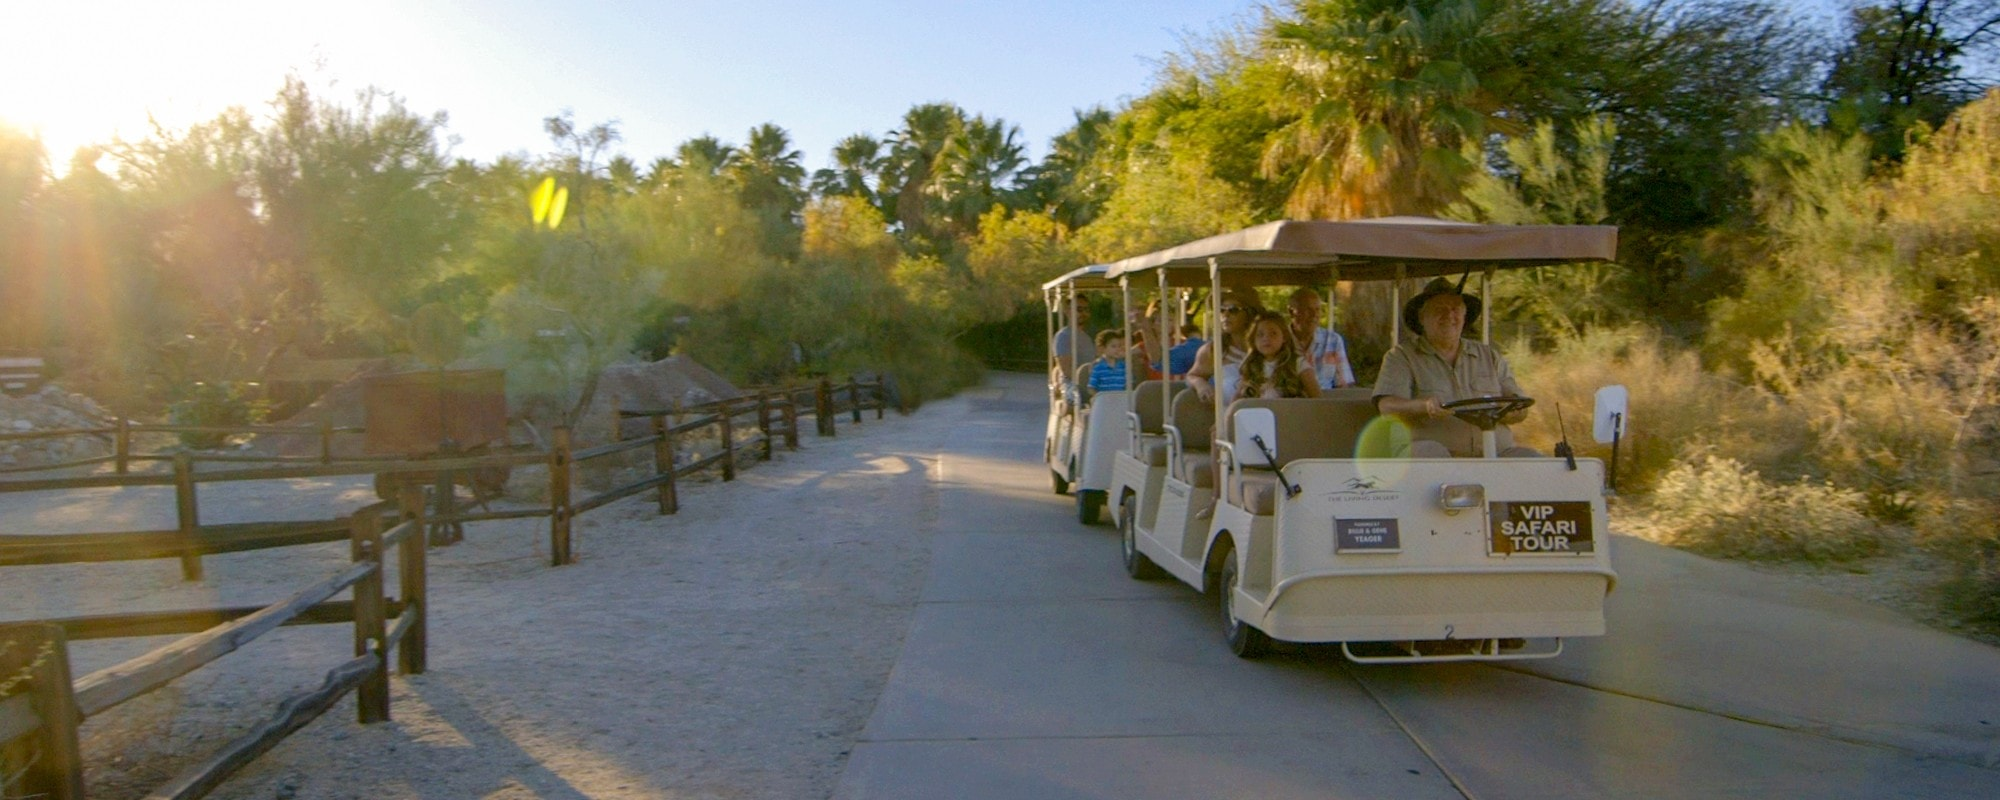 Book a private safari tour at The Living Desert Zoo and Gardens.